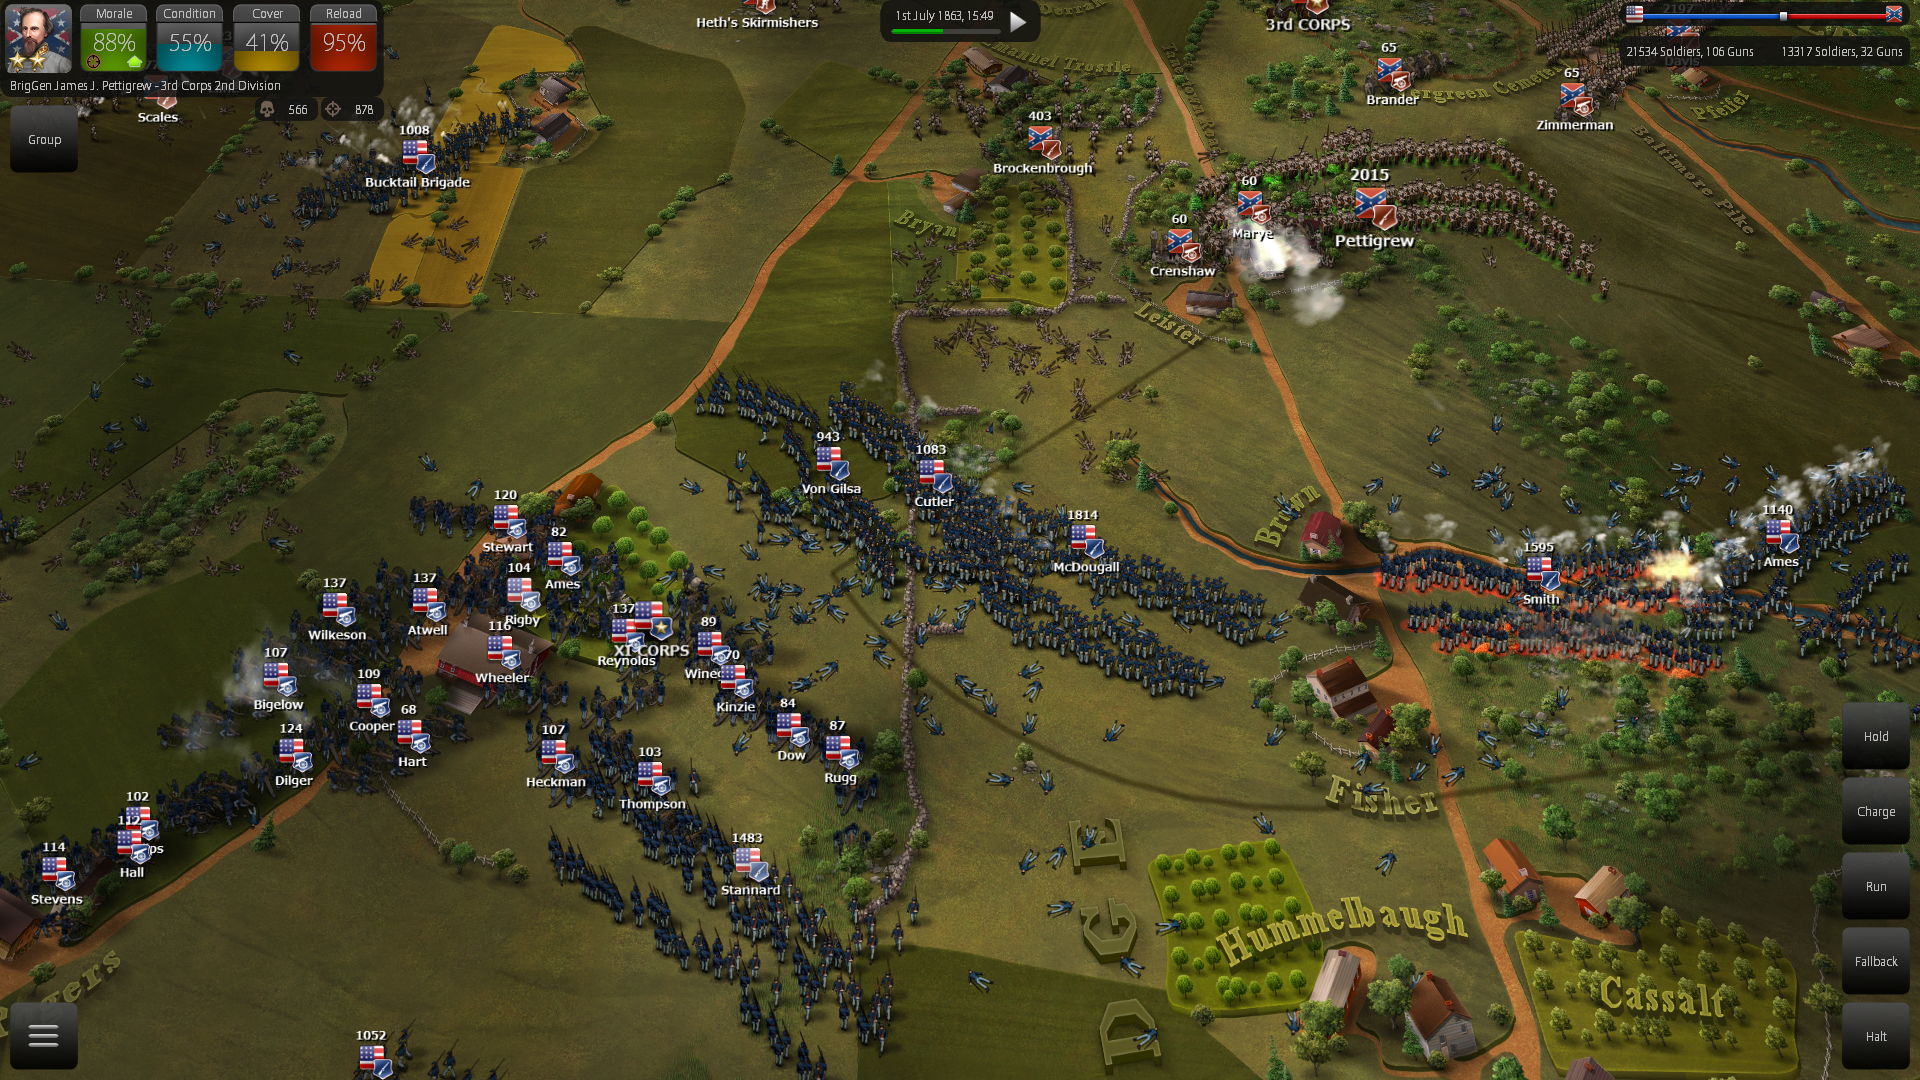 """Union Dynamic AI attacks Cemetery Hill and brings massive artillery support. The map is """"union on the offensive""""."""